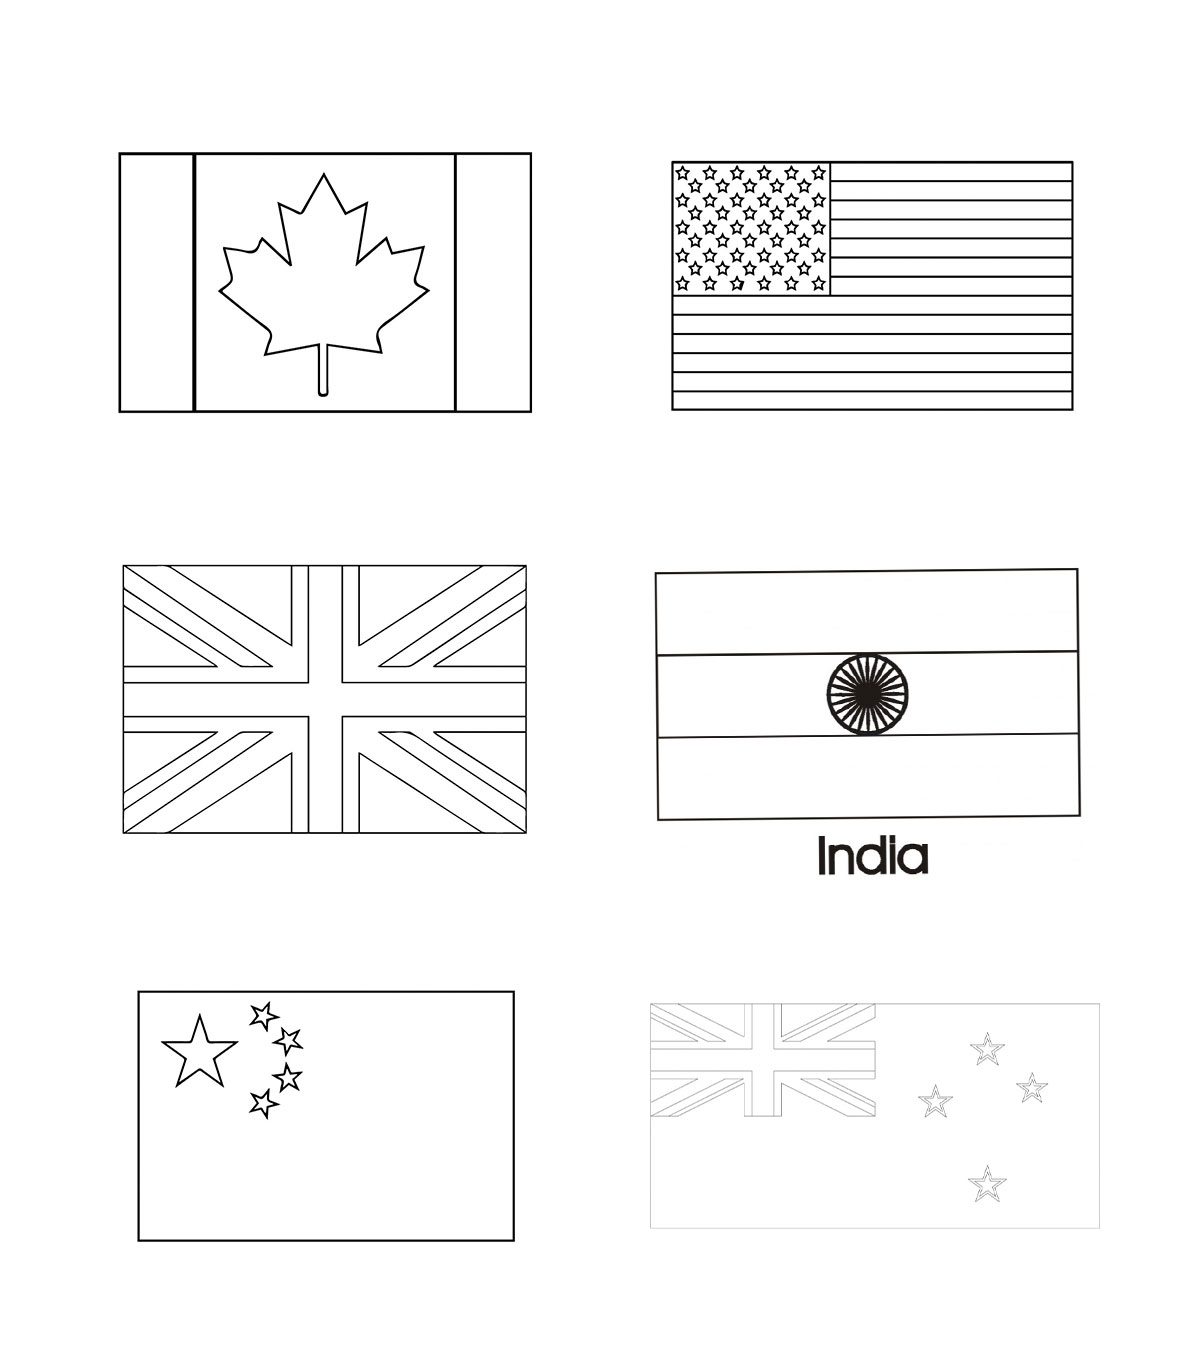 Australian Flag Picture To Colour In - About Flag Collections | 1350x1200